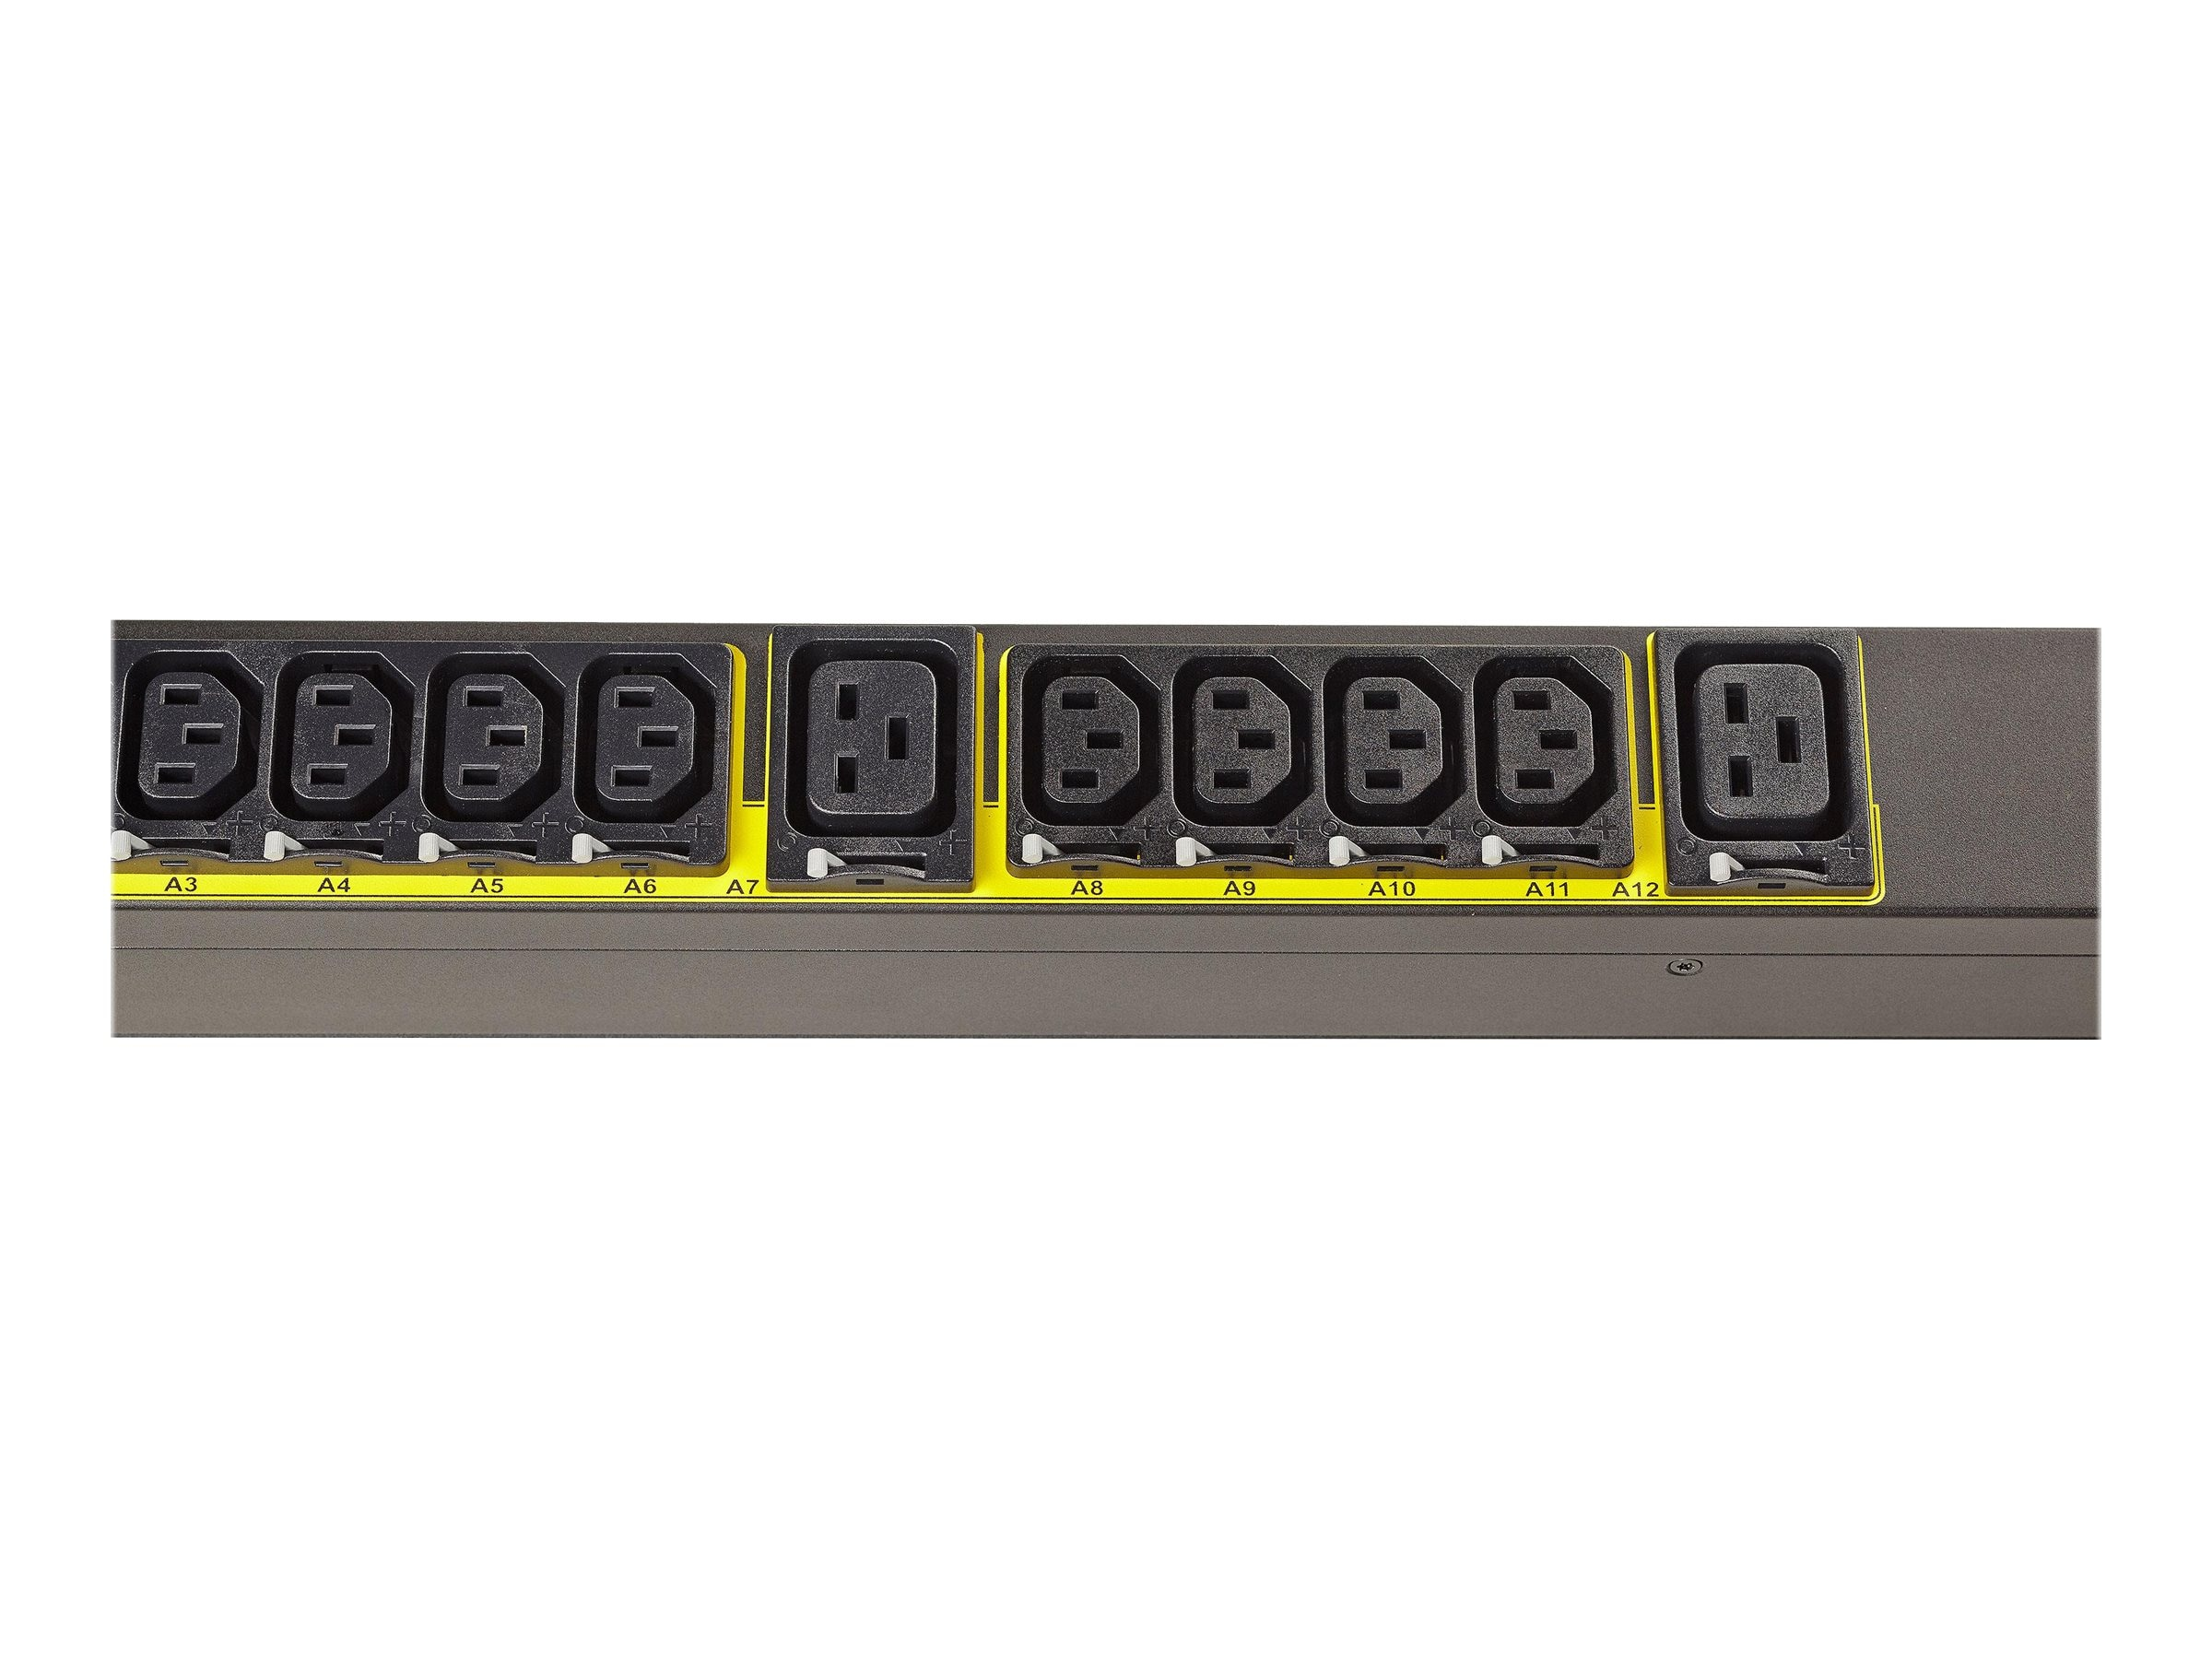 Eaton Managed ePDU 1.92kW 120V 16A 0U 5-20P L5-20P Inputs 10ft Cords (8) 5-20R Outlets, EMA113-10